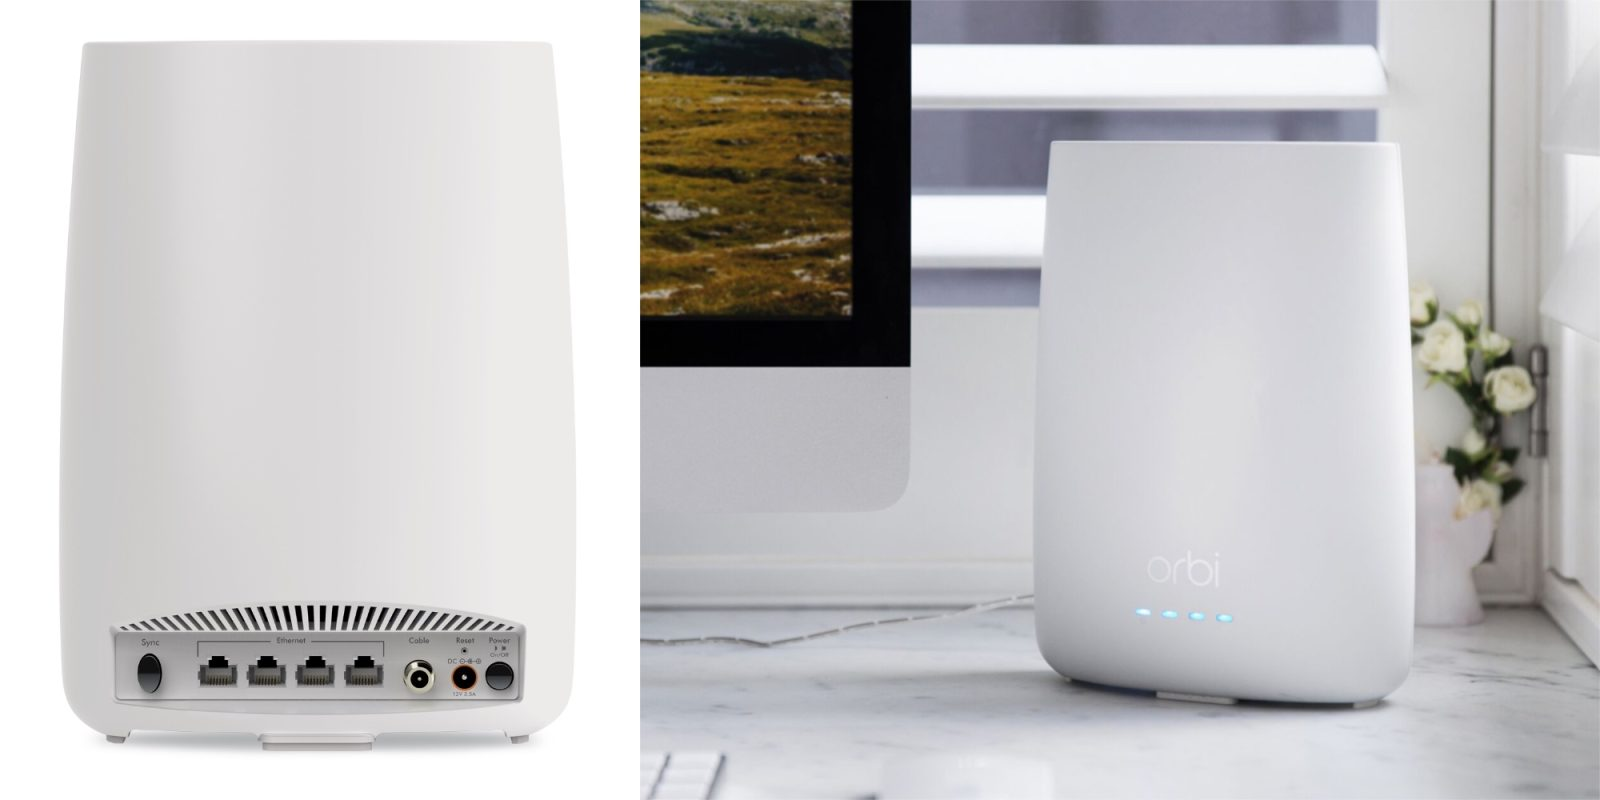 NETGEAR's Orbi Cable Modem + Wi-Fi Router drops to new low at $214 (Save 20%)